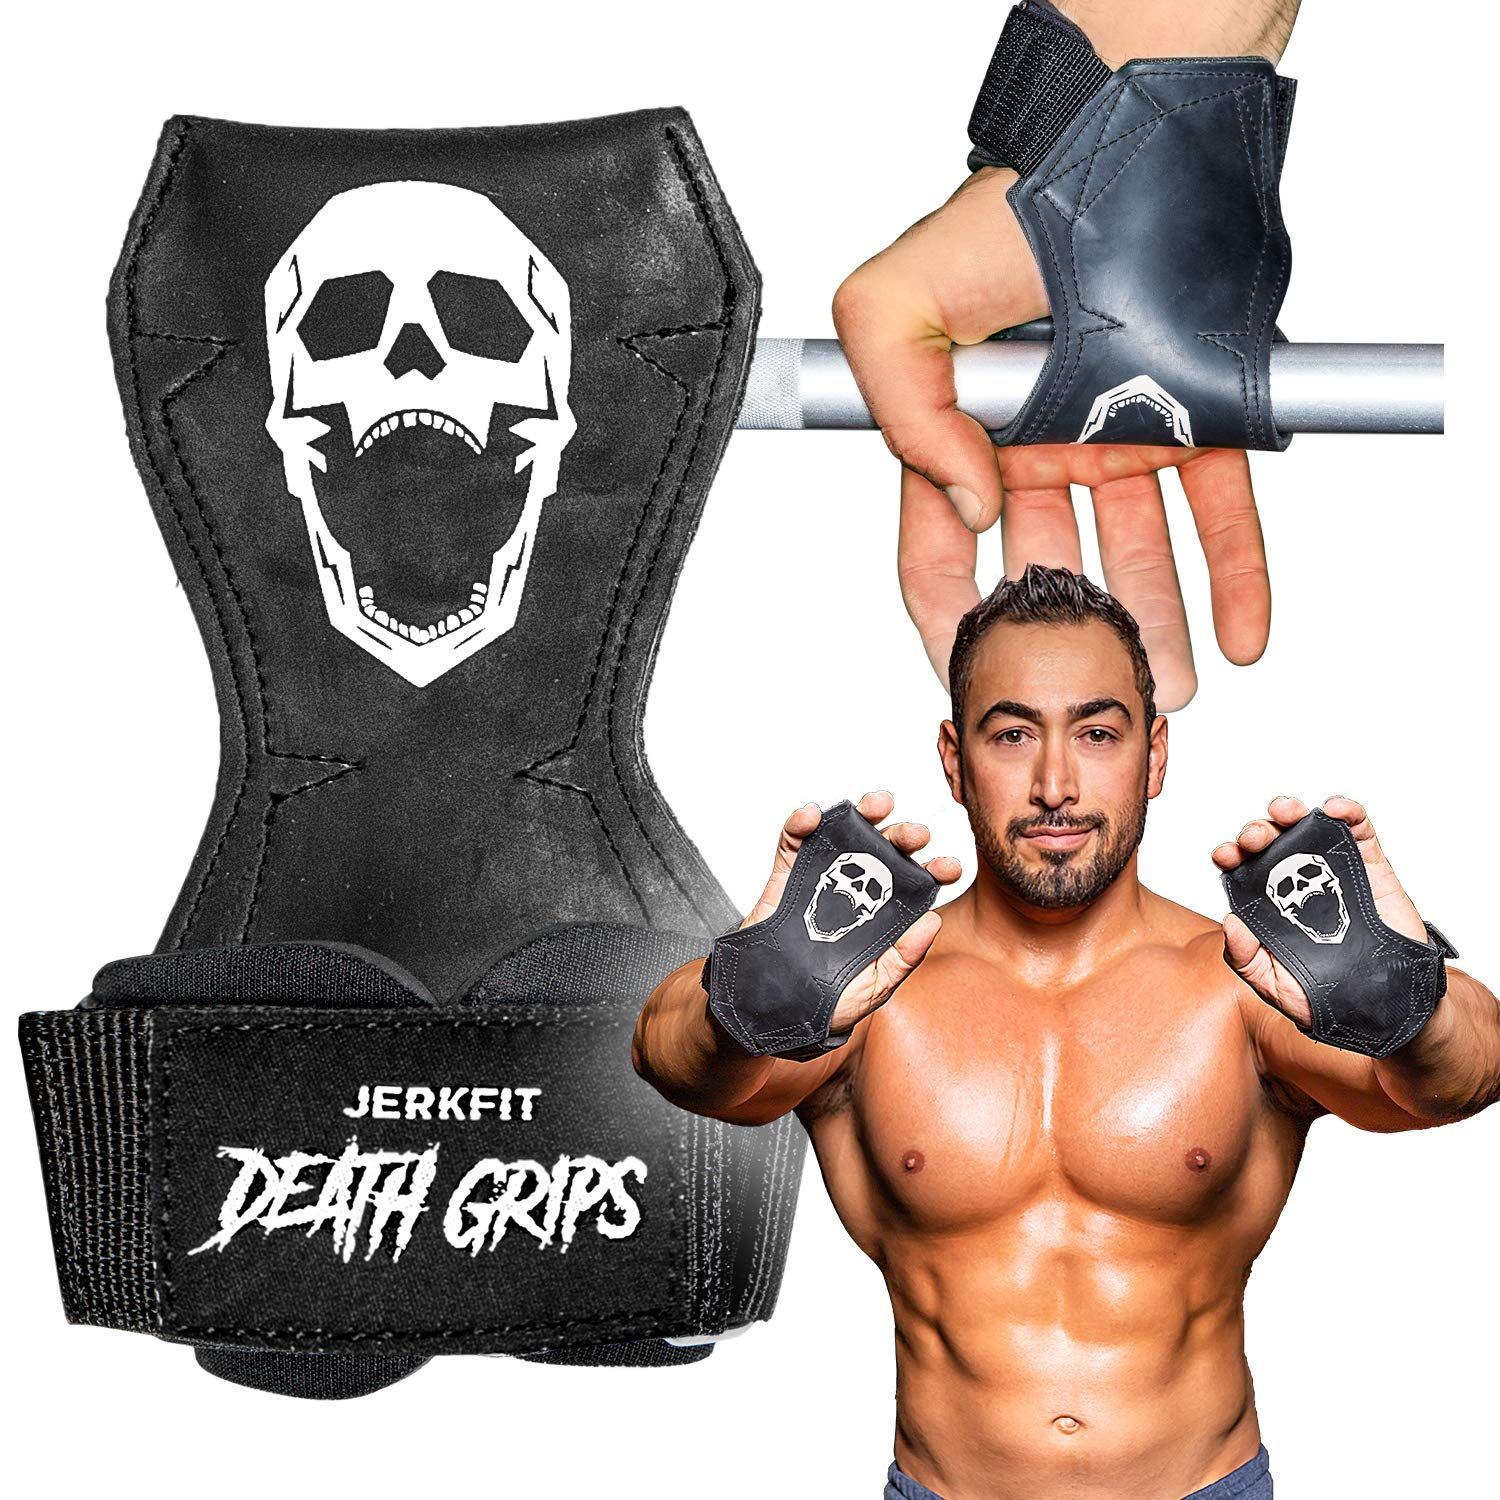 JerkFit Death Grips, Ultra Premium Lifting Straps for Dead Lifts, Pull-UPs, and Heavy Shrugs (Medium)